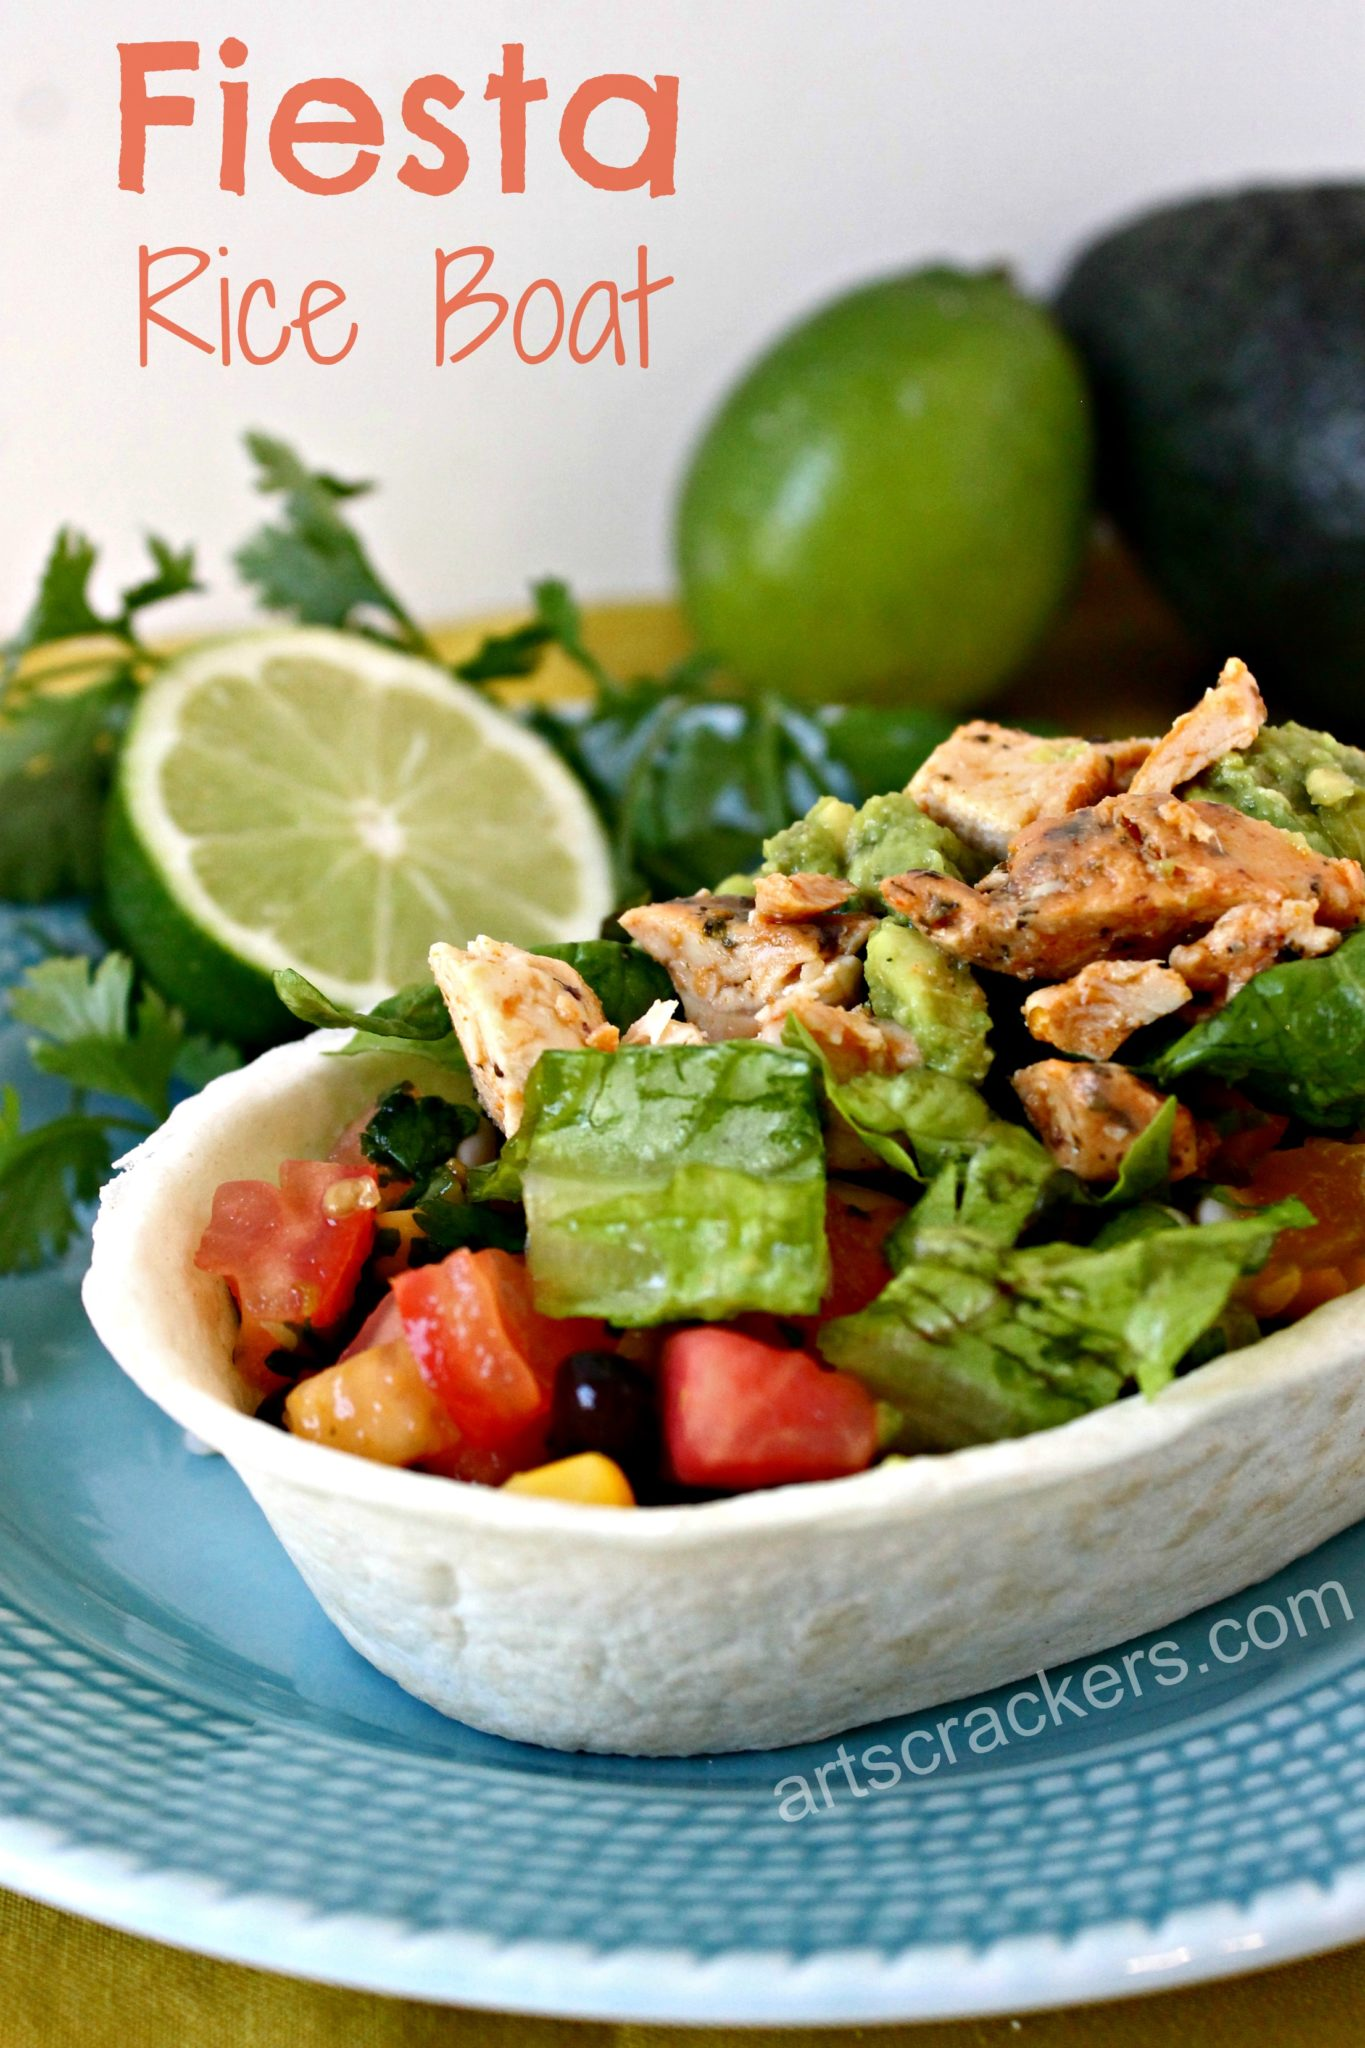 Fiesta Rice Boat with Old El Paso and Avocados from Mexico. Click the picture for the recipe.